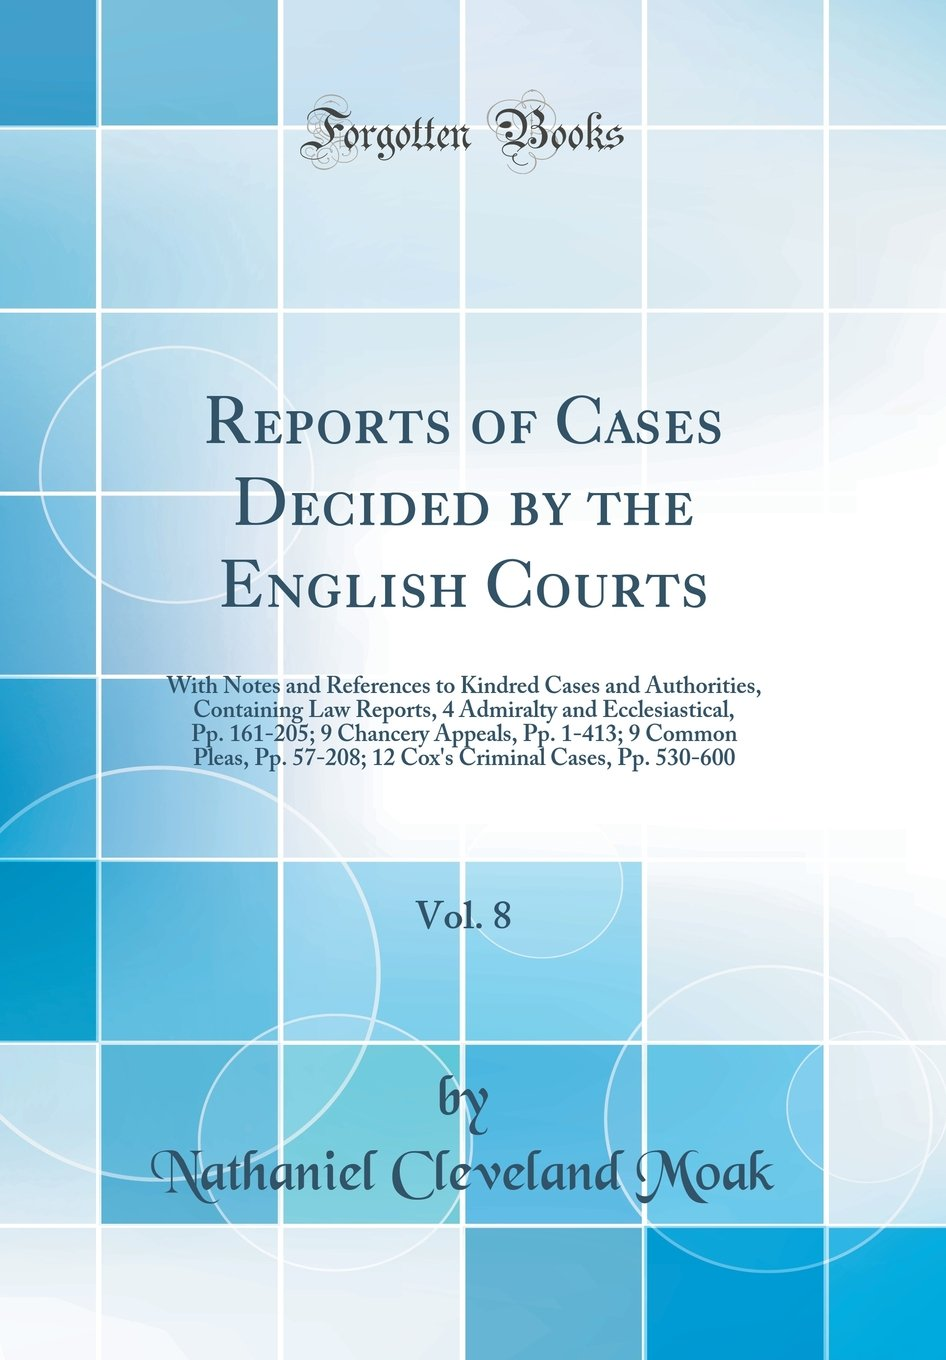 Reports of Cases Decided by the English Courts, Vol. 8: With Notes and References to Kindred Cases and Authorities, Containing Law Reports, 4 ... 9 Common Pleas, Pp. 57-208; 12 Cox's Cr PDF